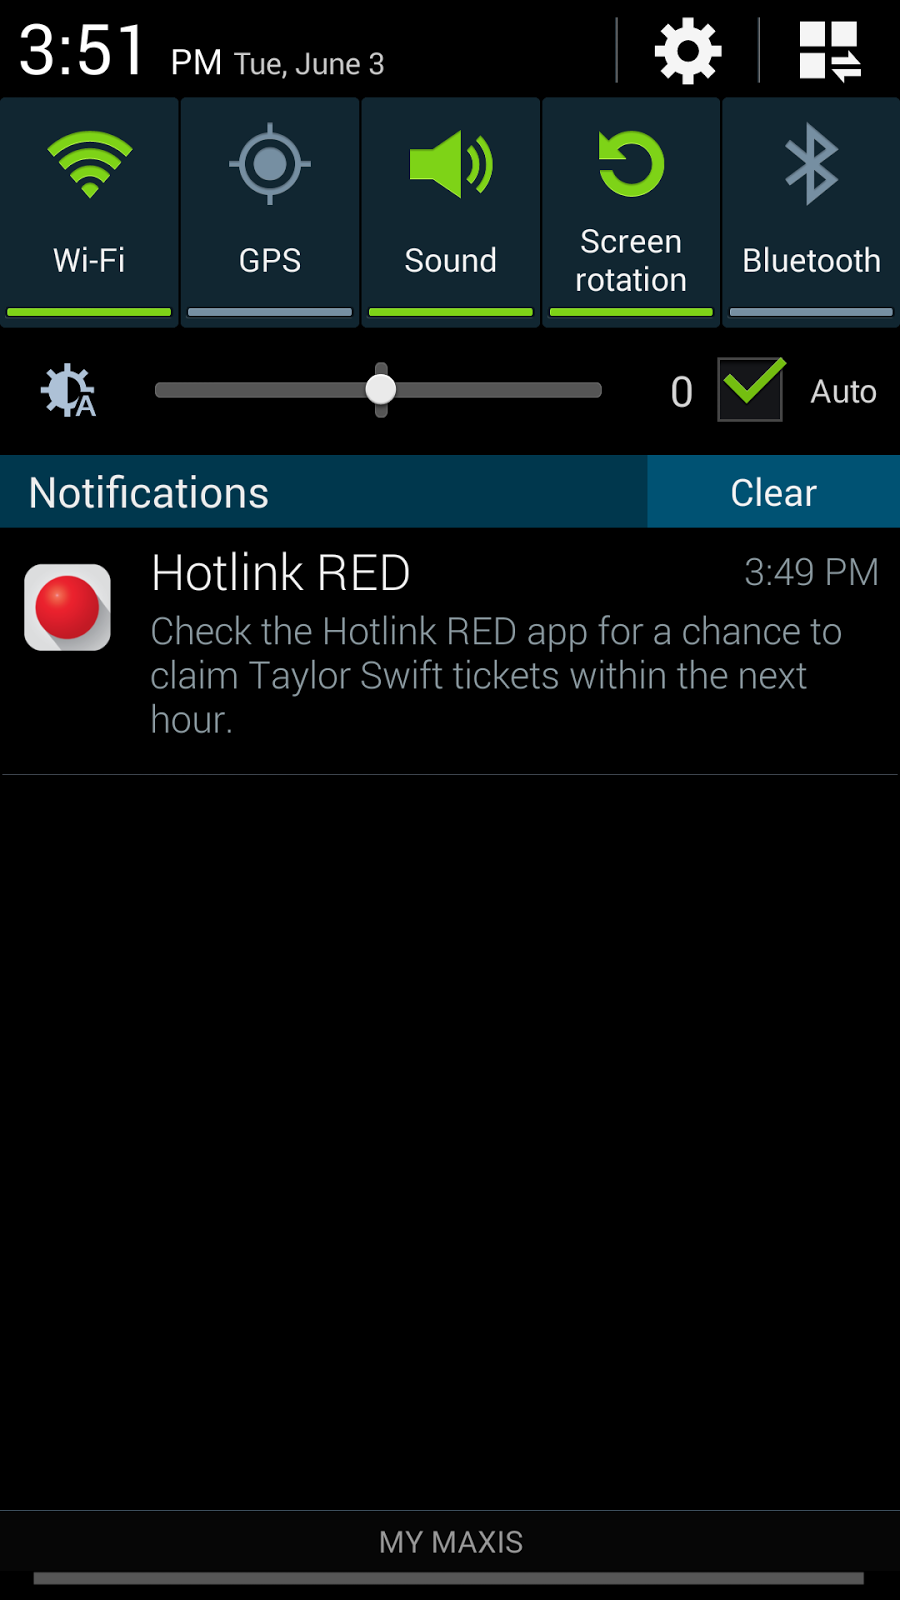 RED Apps notification for Taylor Swift concert ticket giveaway